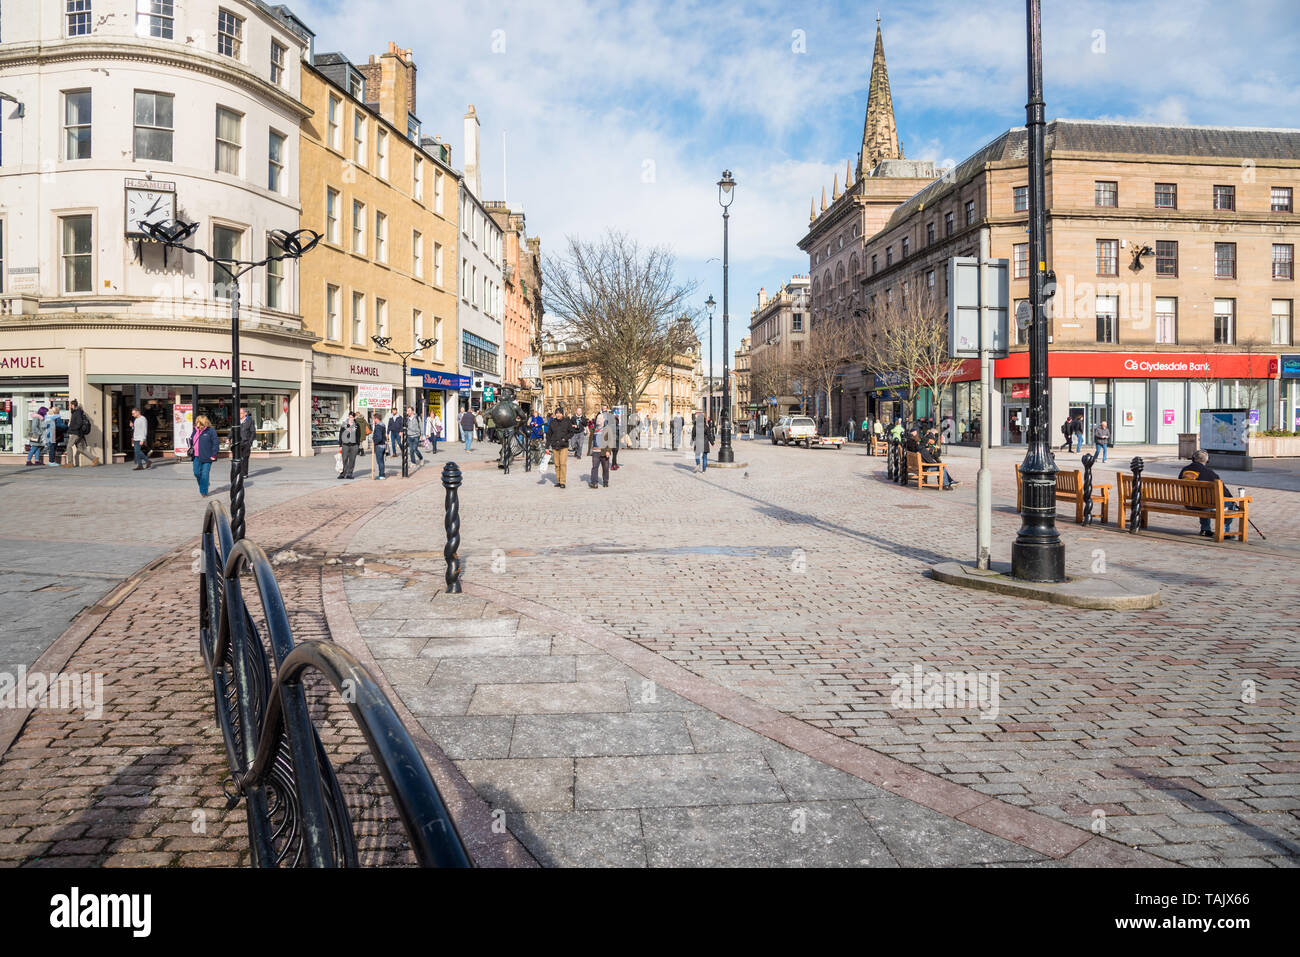 Dundee, UK - March 8, 2018: People strolling around the pedestrainized city centre lined with shops and restaurants on a sunny winter day - Stock Image